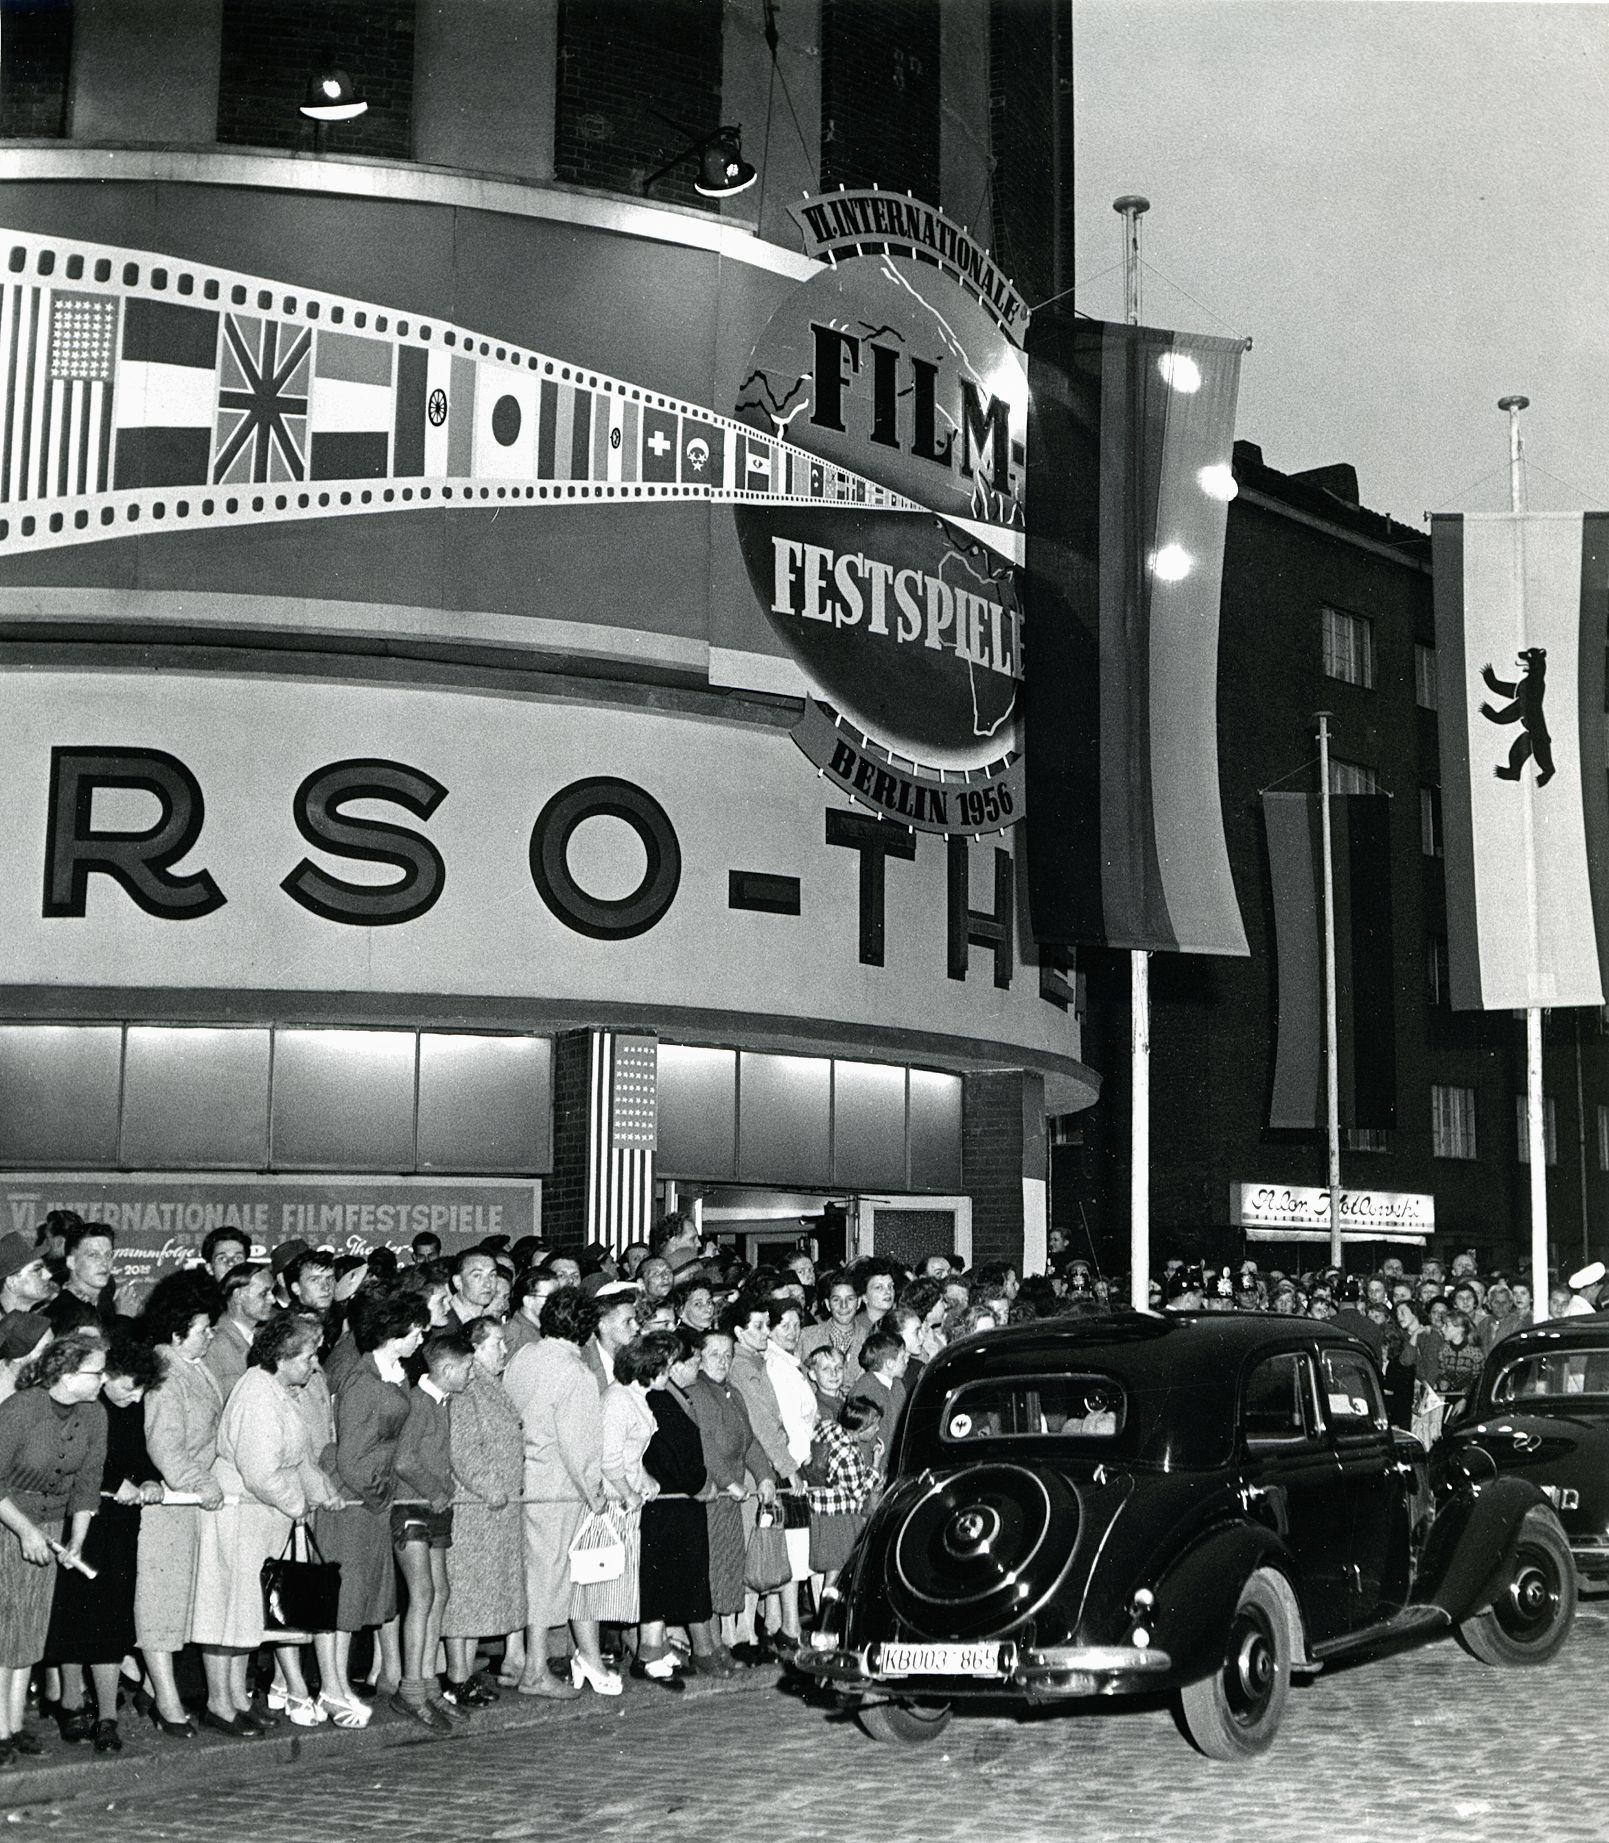 Black and white photo of a crowd in front of the cinema